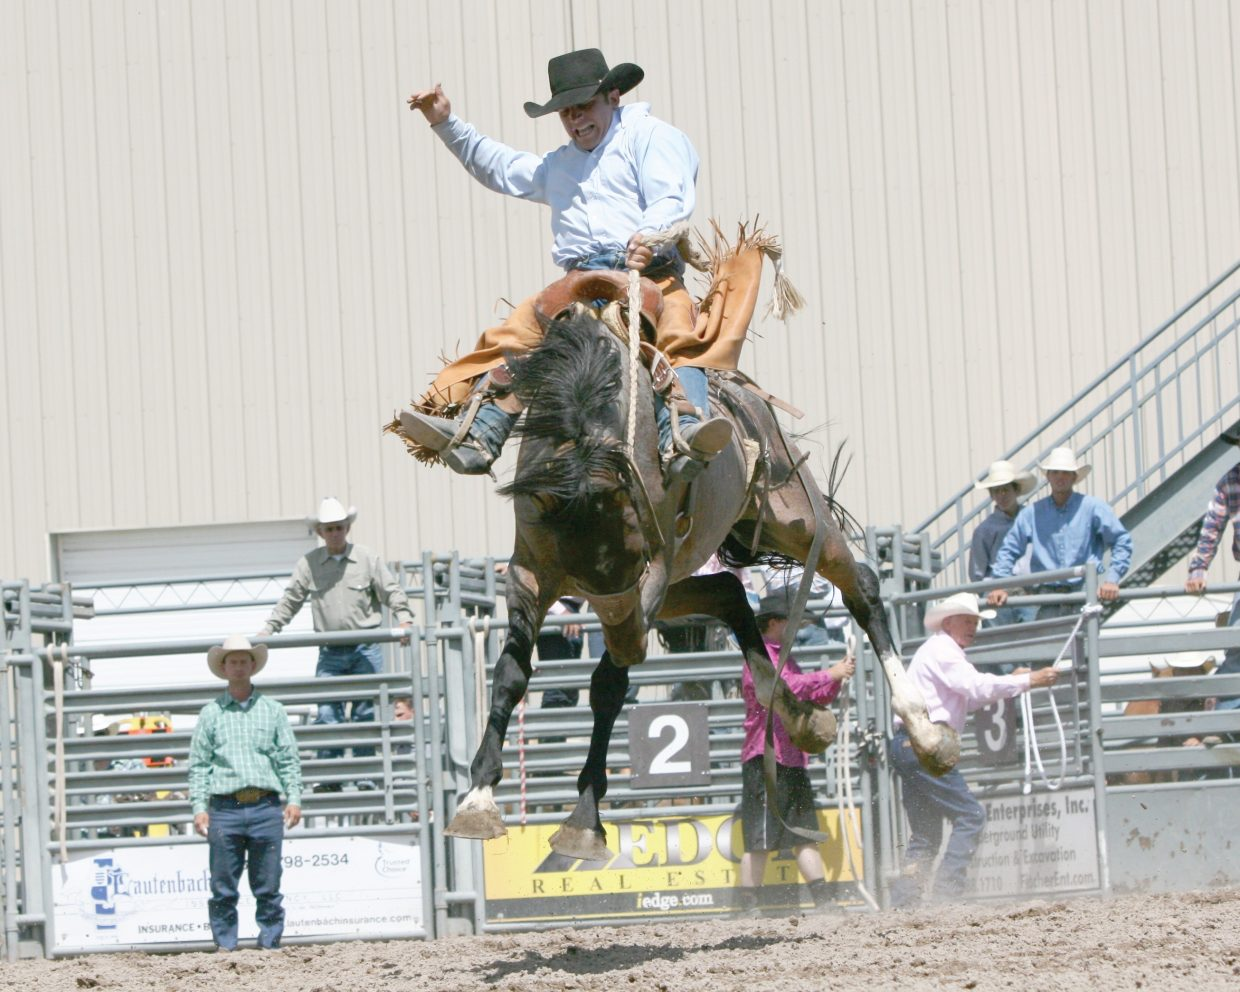 Travis Darling, who was killed in a car crash in October, will be memorialized during a saddle bronc ride competition at this weekend's rodeo performances.